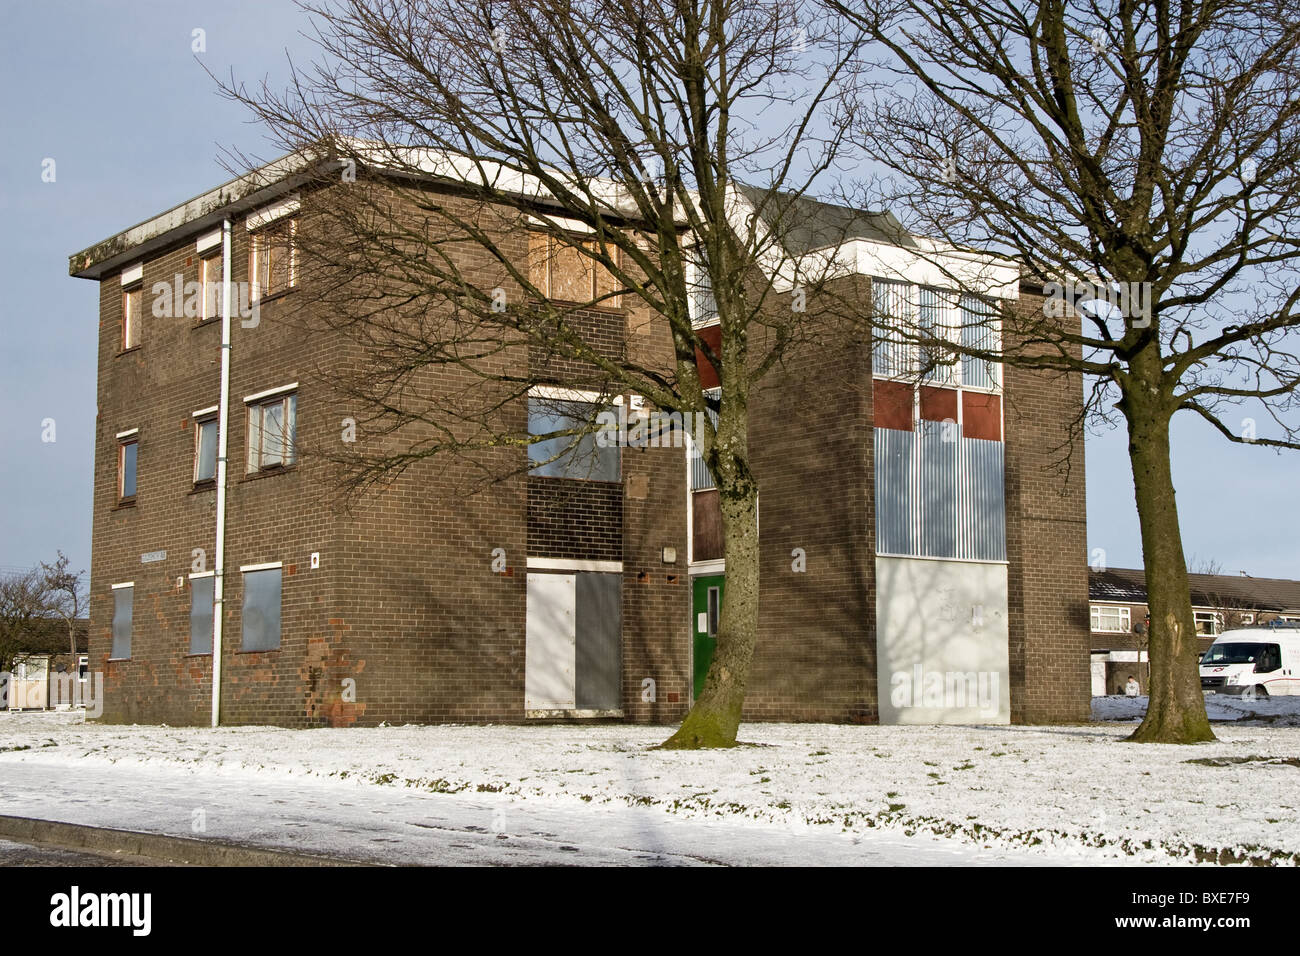 Former council flats, to be demolished, Sholver estate,Oldham, (Oldham East + Saddleworth  Const. ), Greater Manchester, Stock Photo